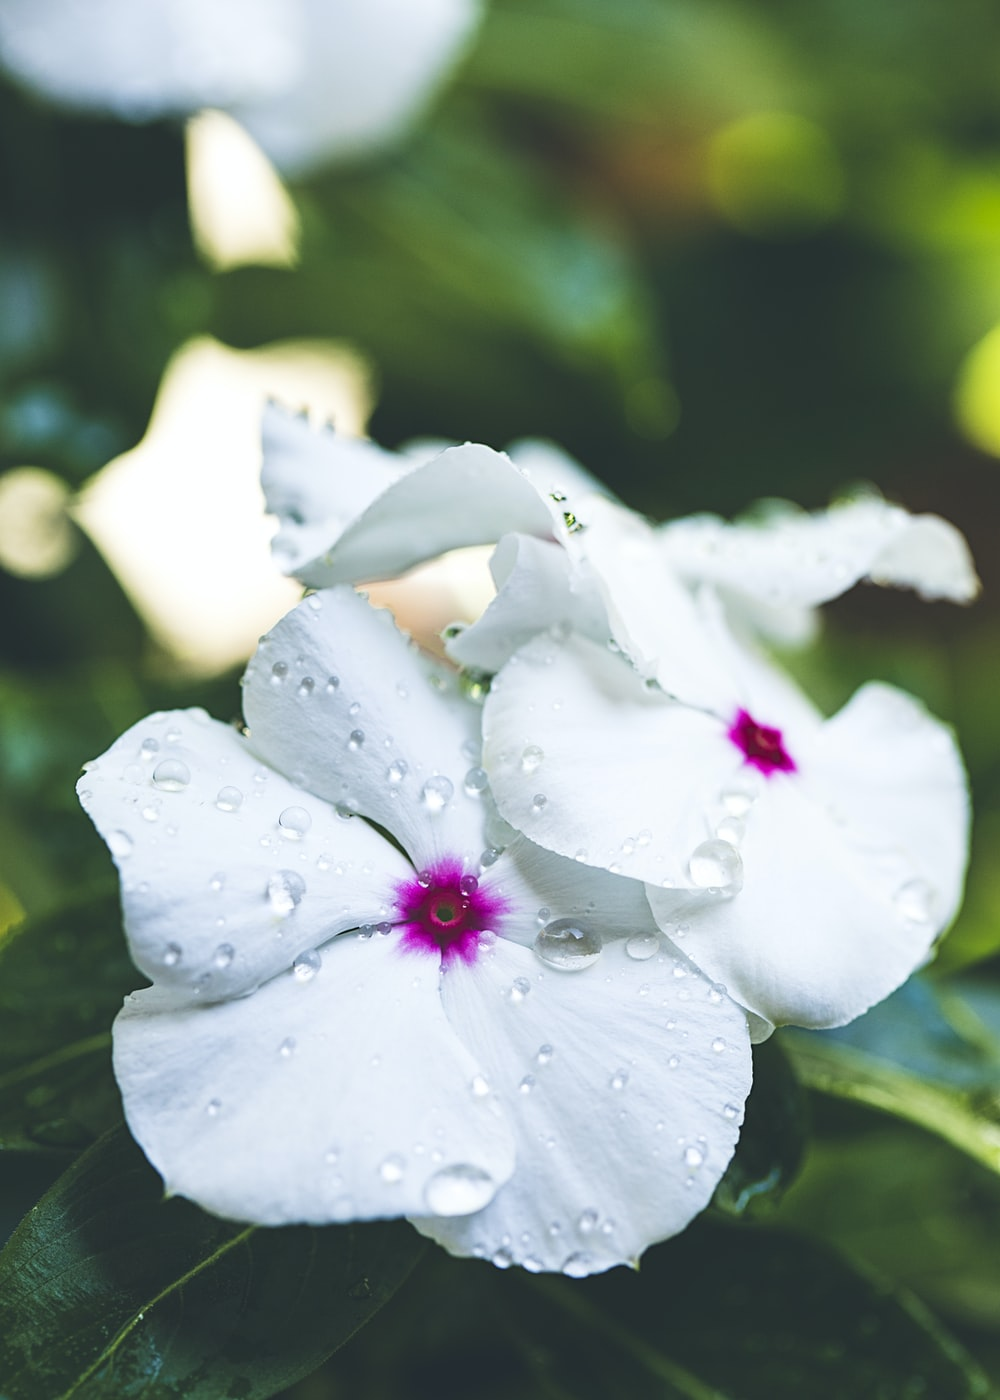 macro photography of white petaled flower